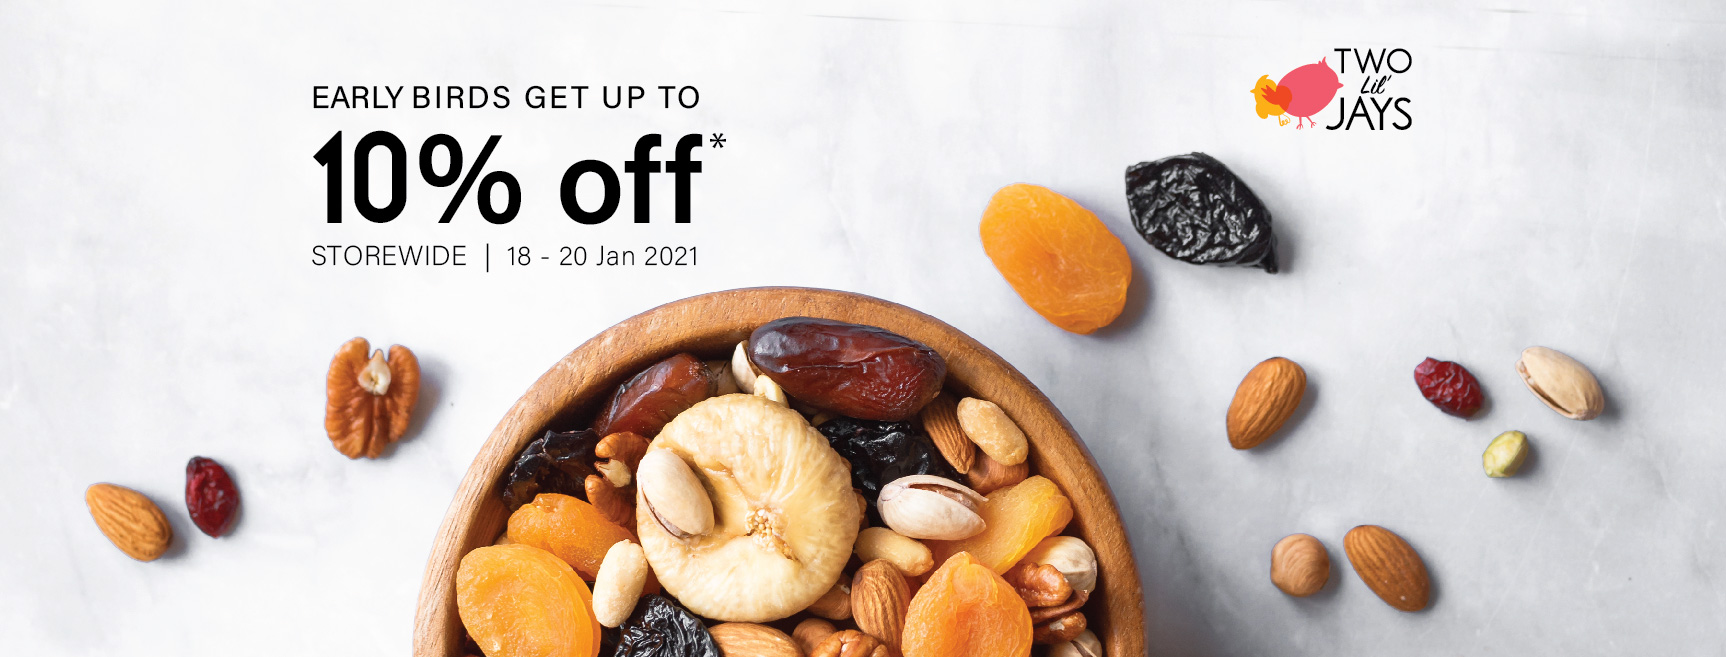 Early Birds Get Up To 10% Off T&C